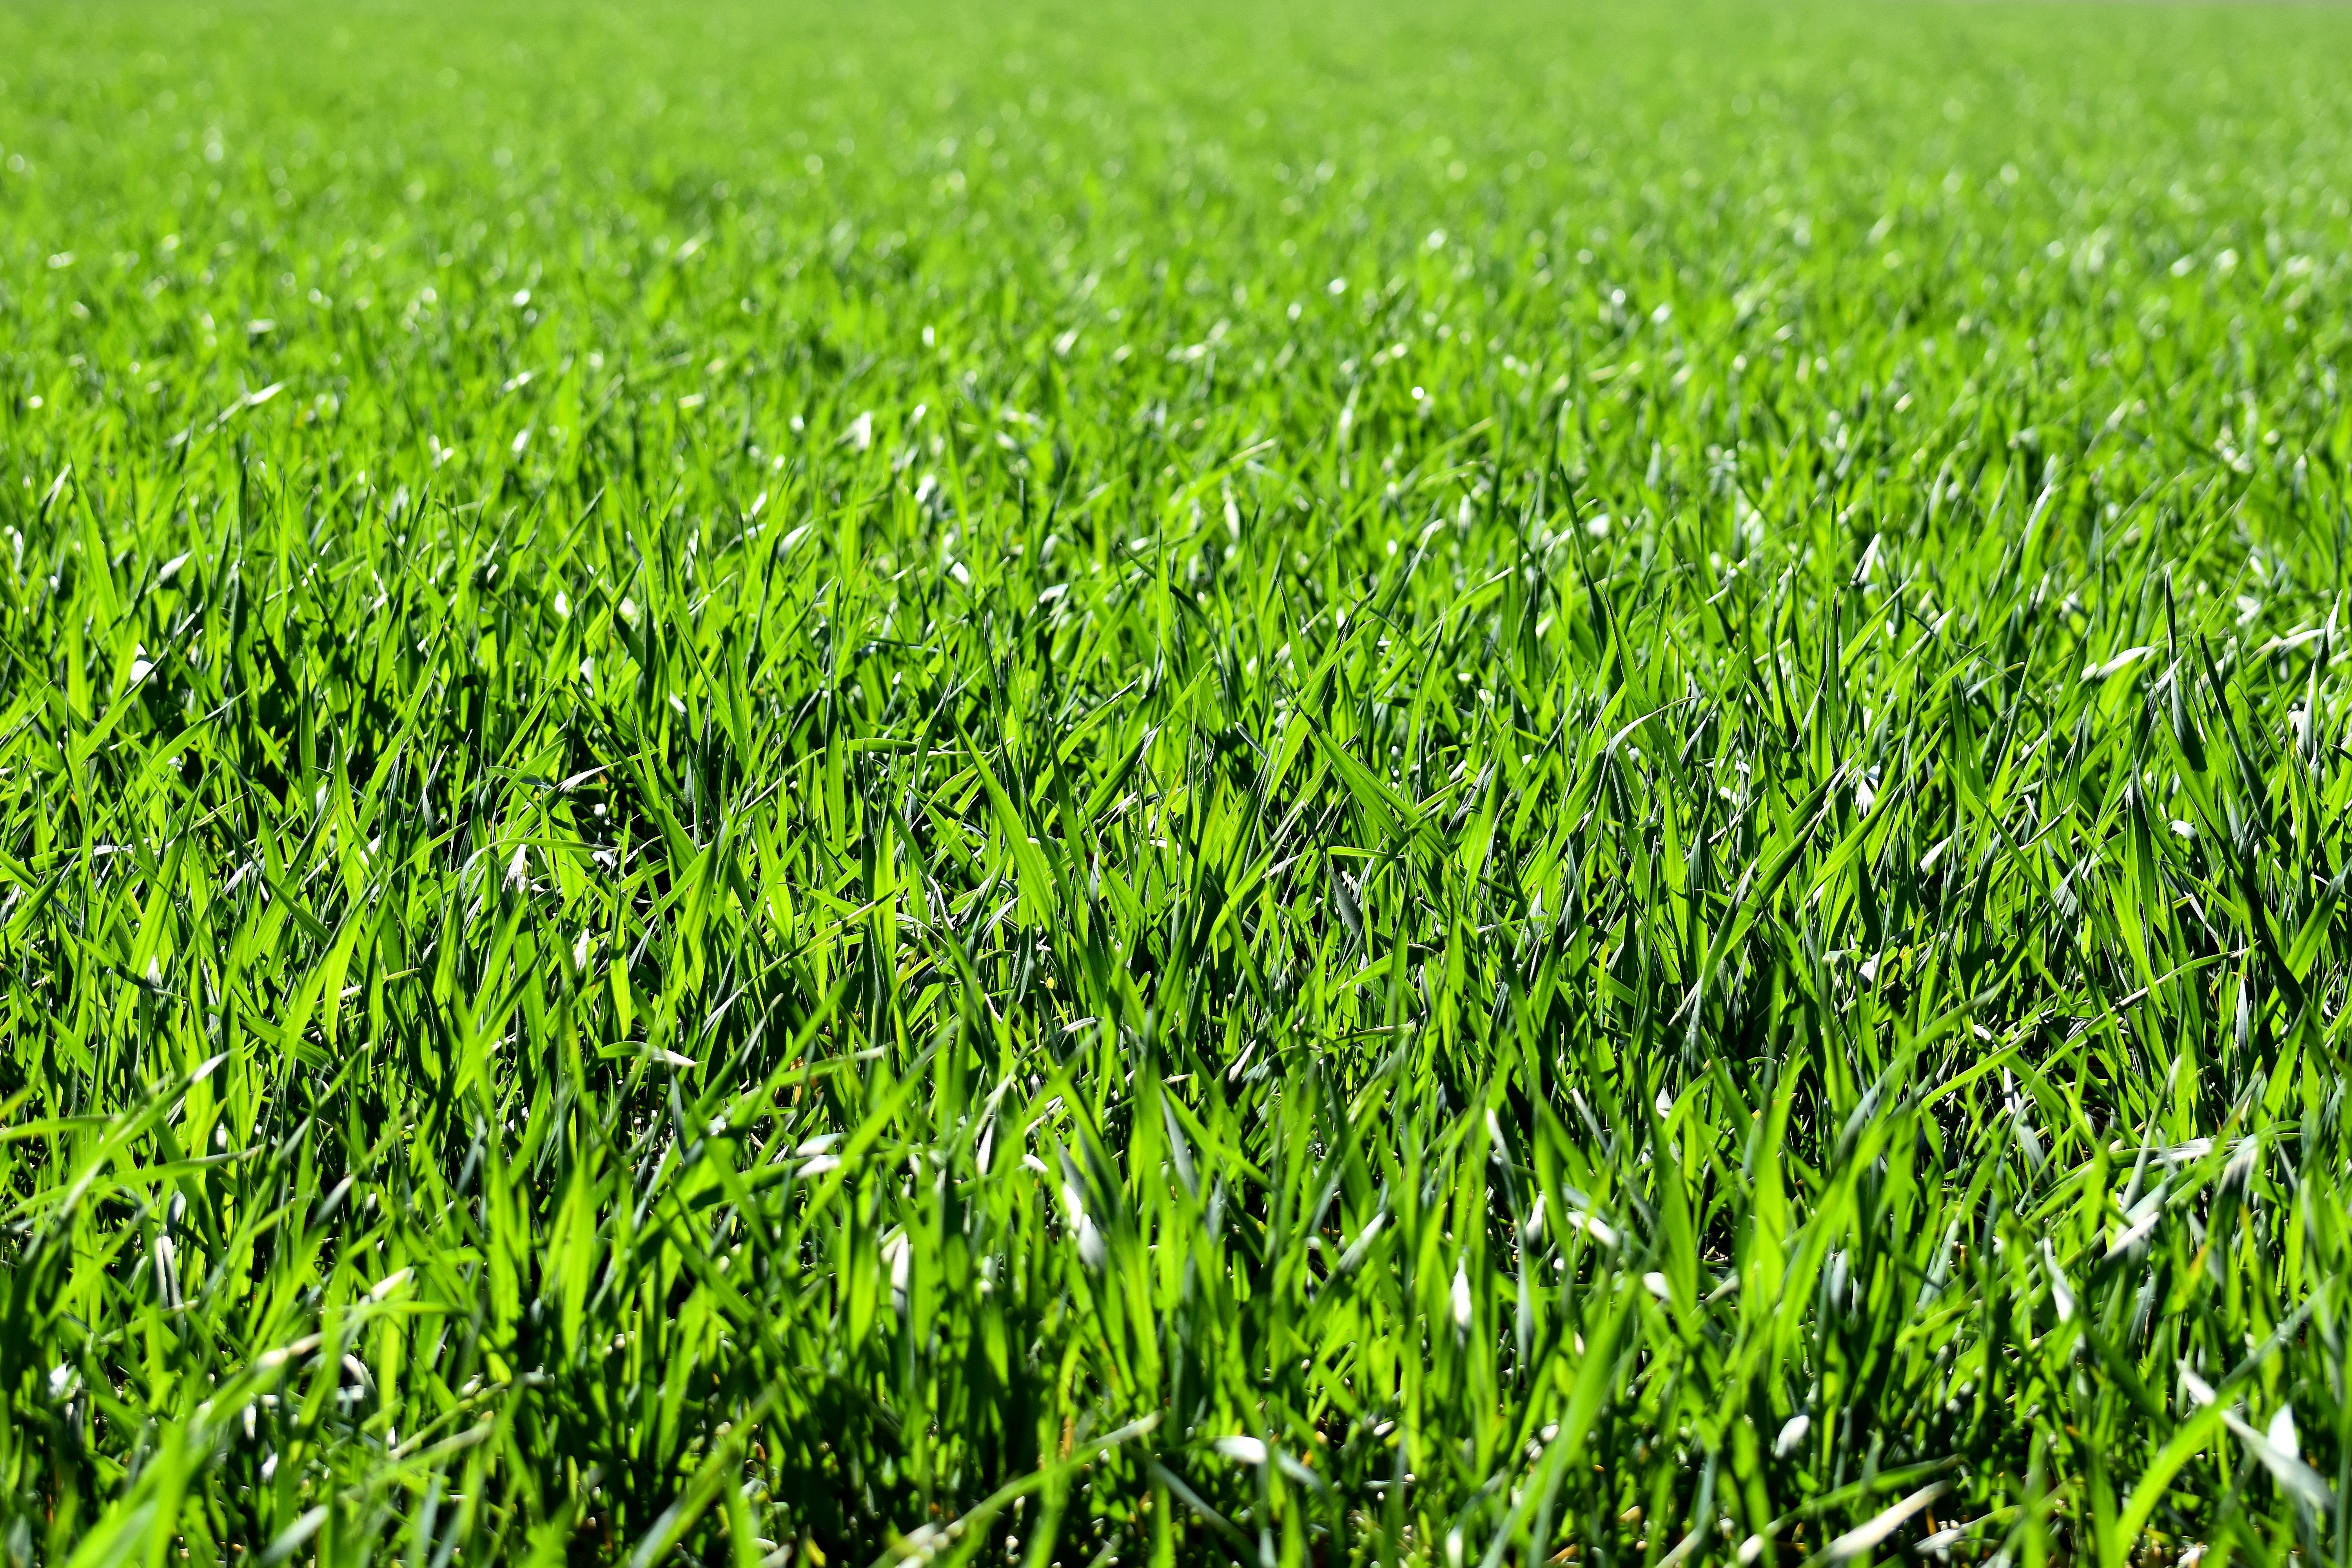 Coastal Greens Lawn Care Does Maintenance On Various Grasses In Central Florida Planting Grass Green Lawn Care Lawn Care Tips